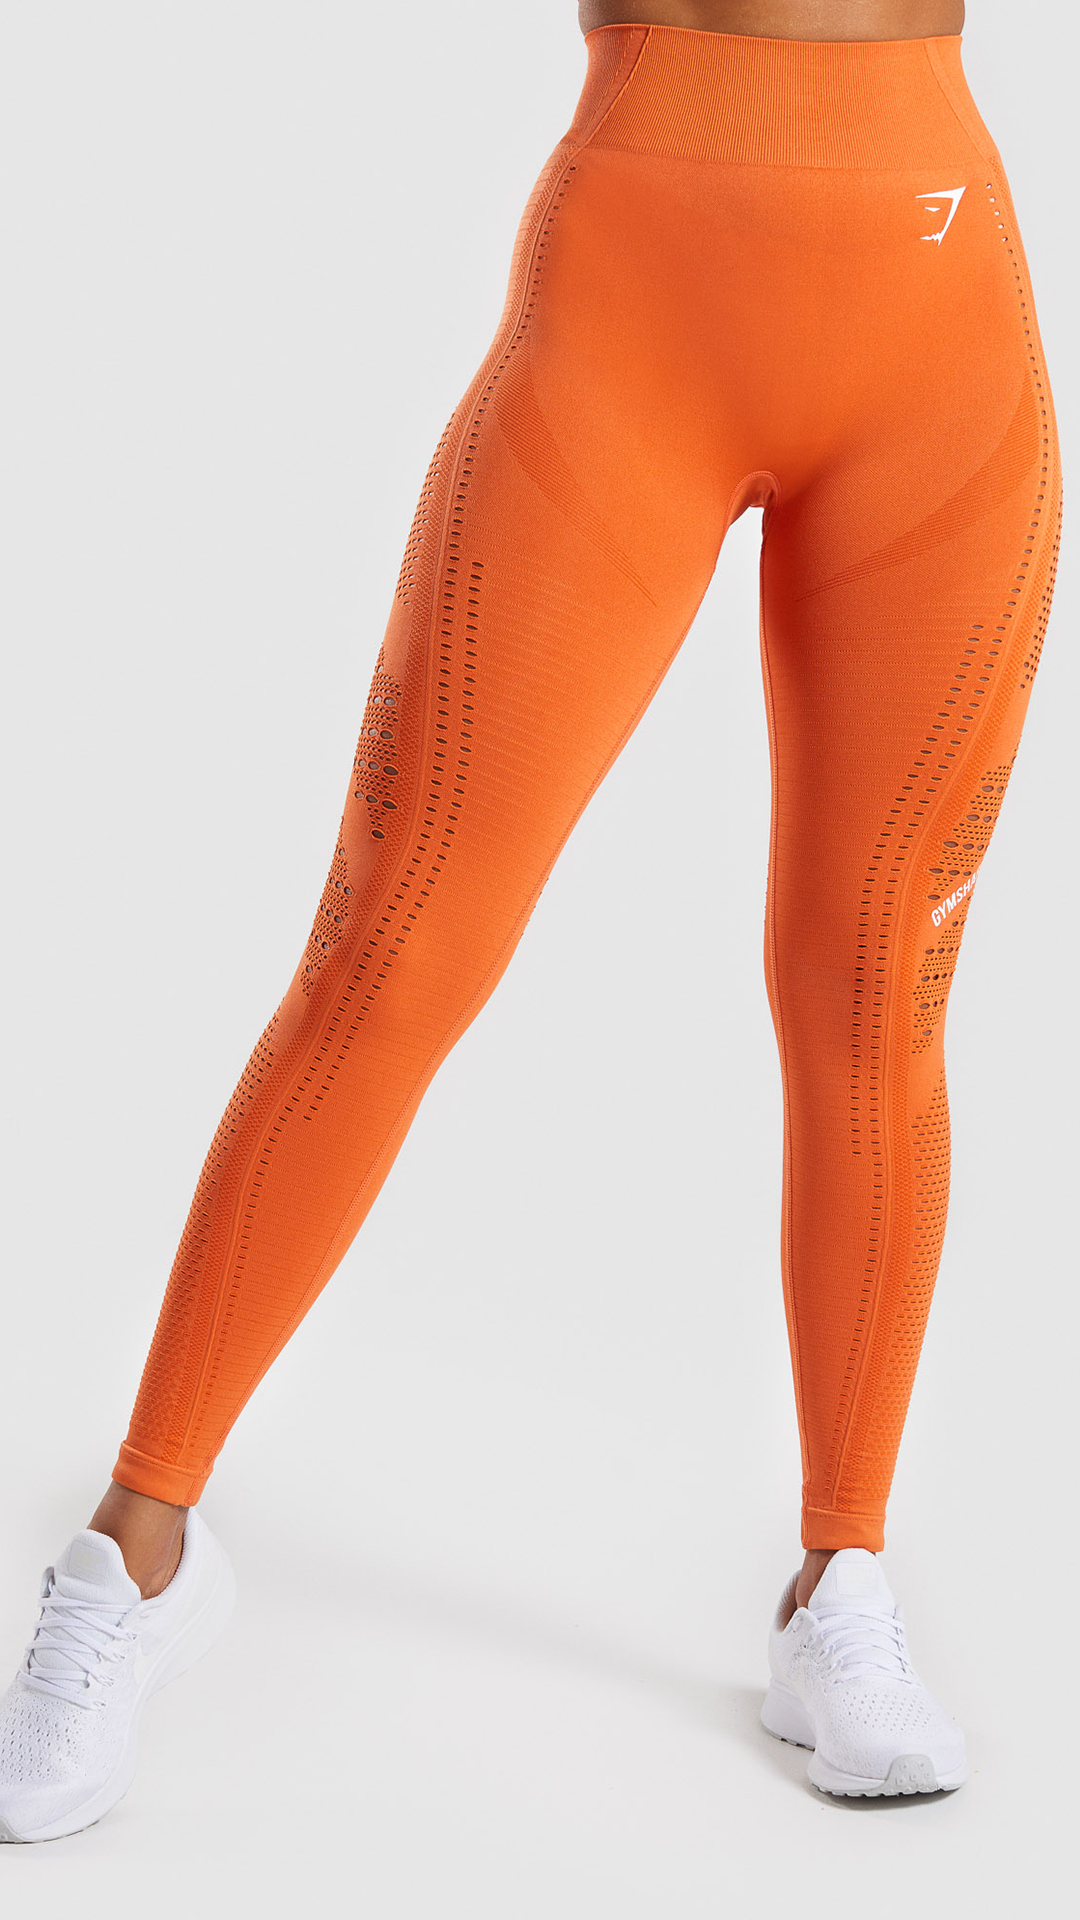 56f8067d546502 The Flawless Knit Leggings, Burnt Orange. A detailed design for Flawless  performance. Scrupulously